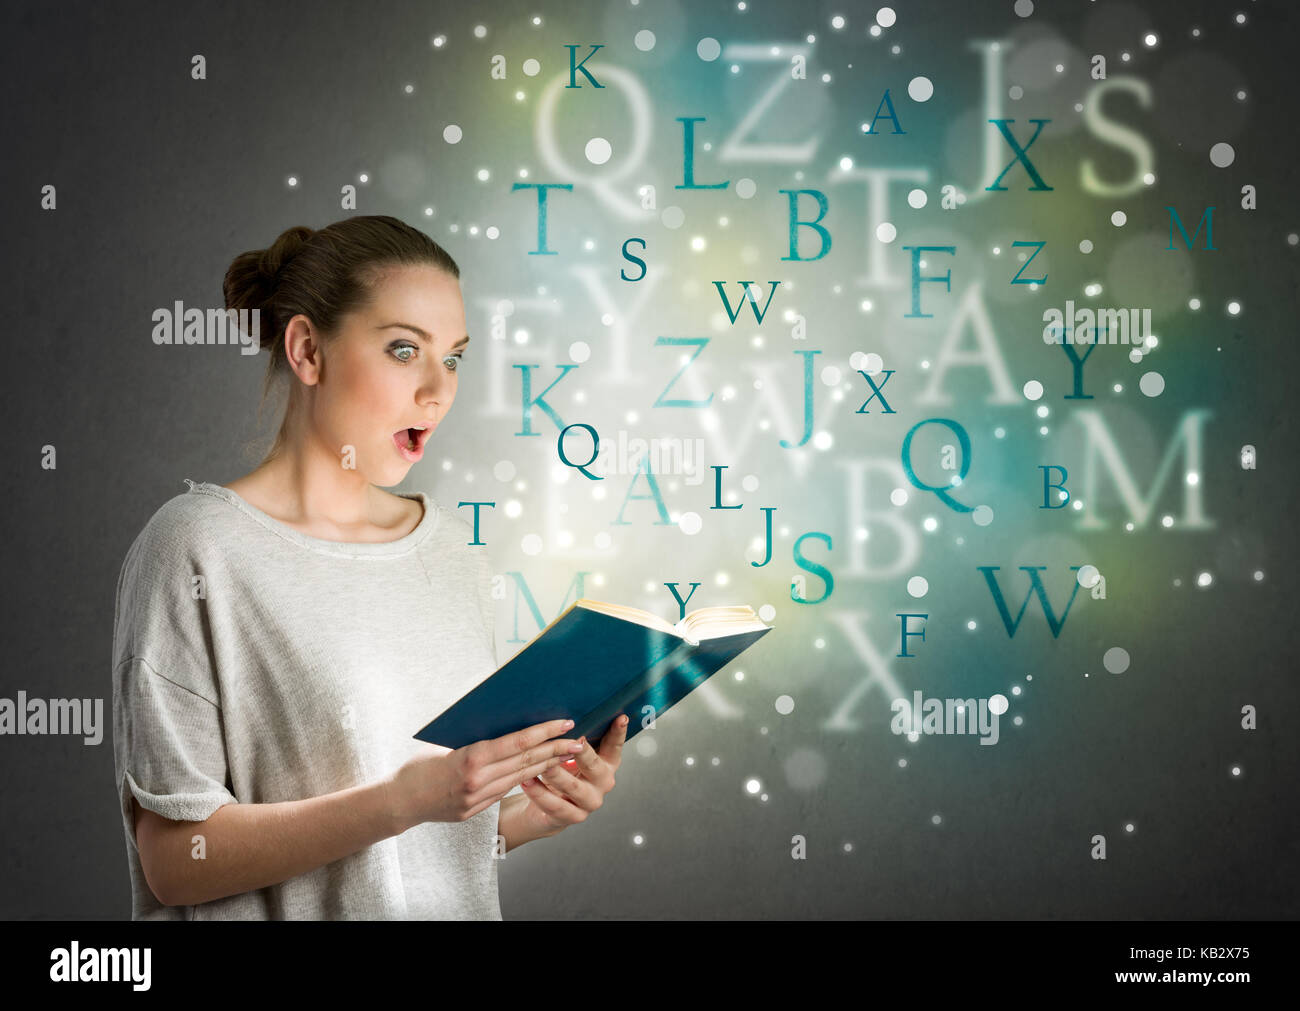 girl with astonishment looks in the book from which fly letters - Stock Image